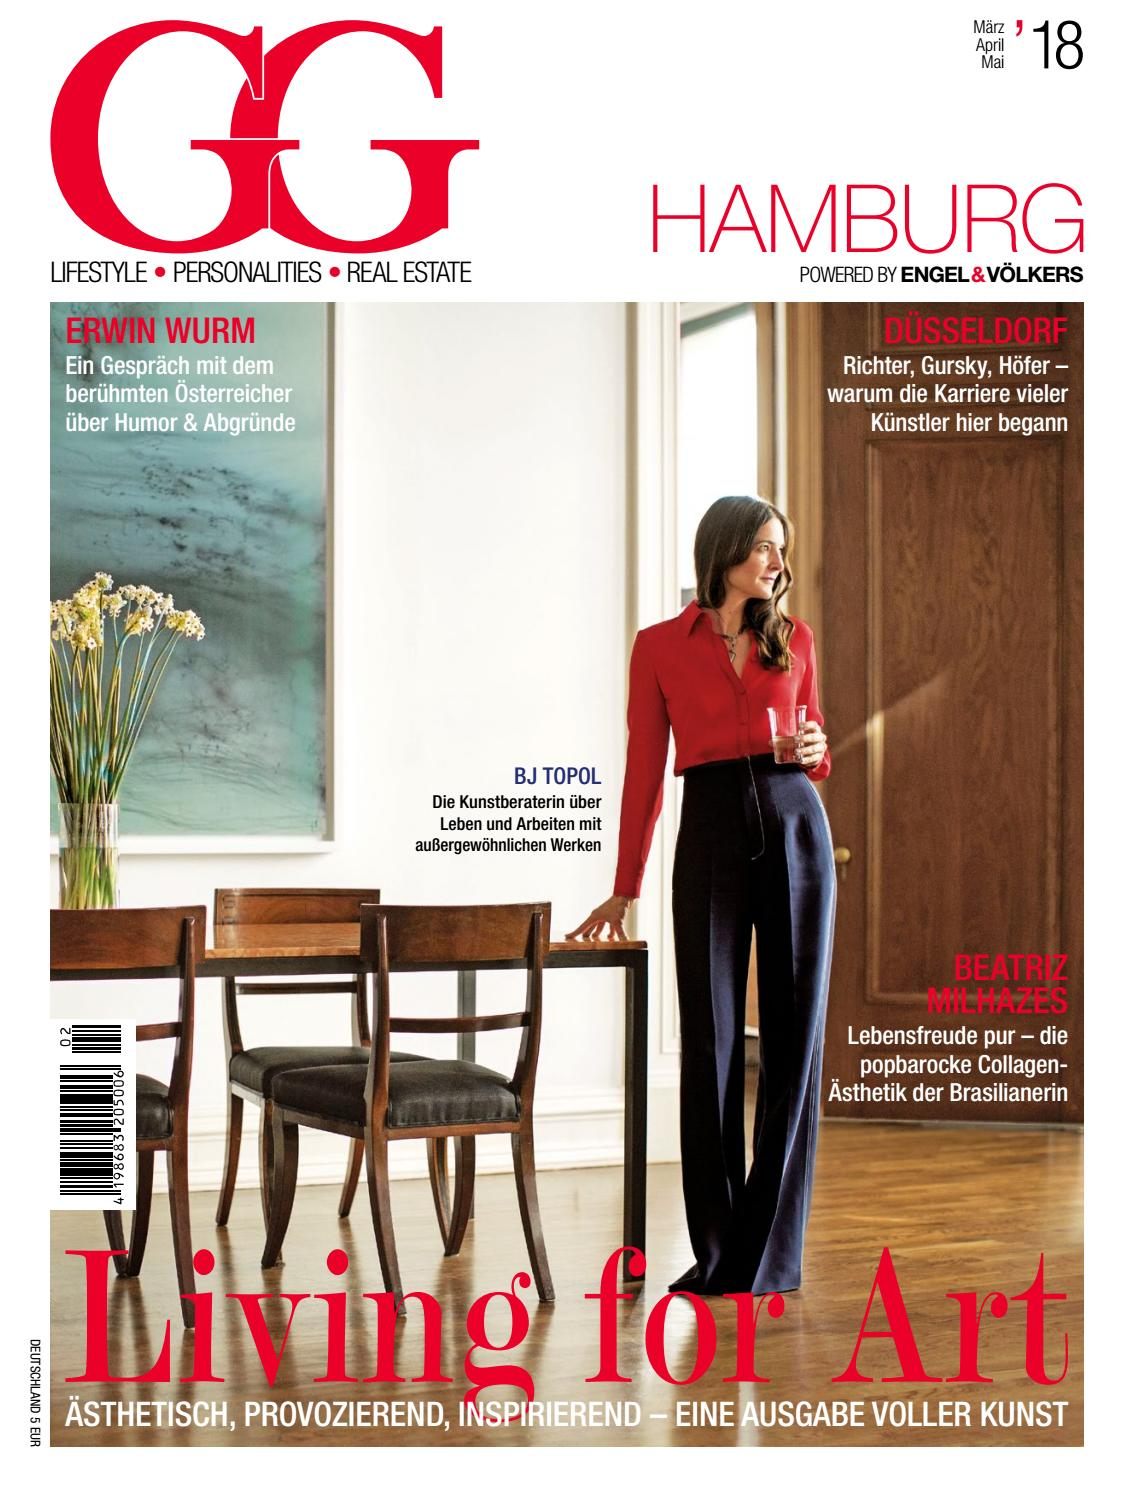 Magazine Hamburg Gg By 0218 Issuu bfgY7y6v